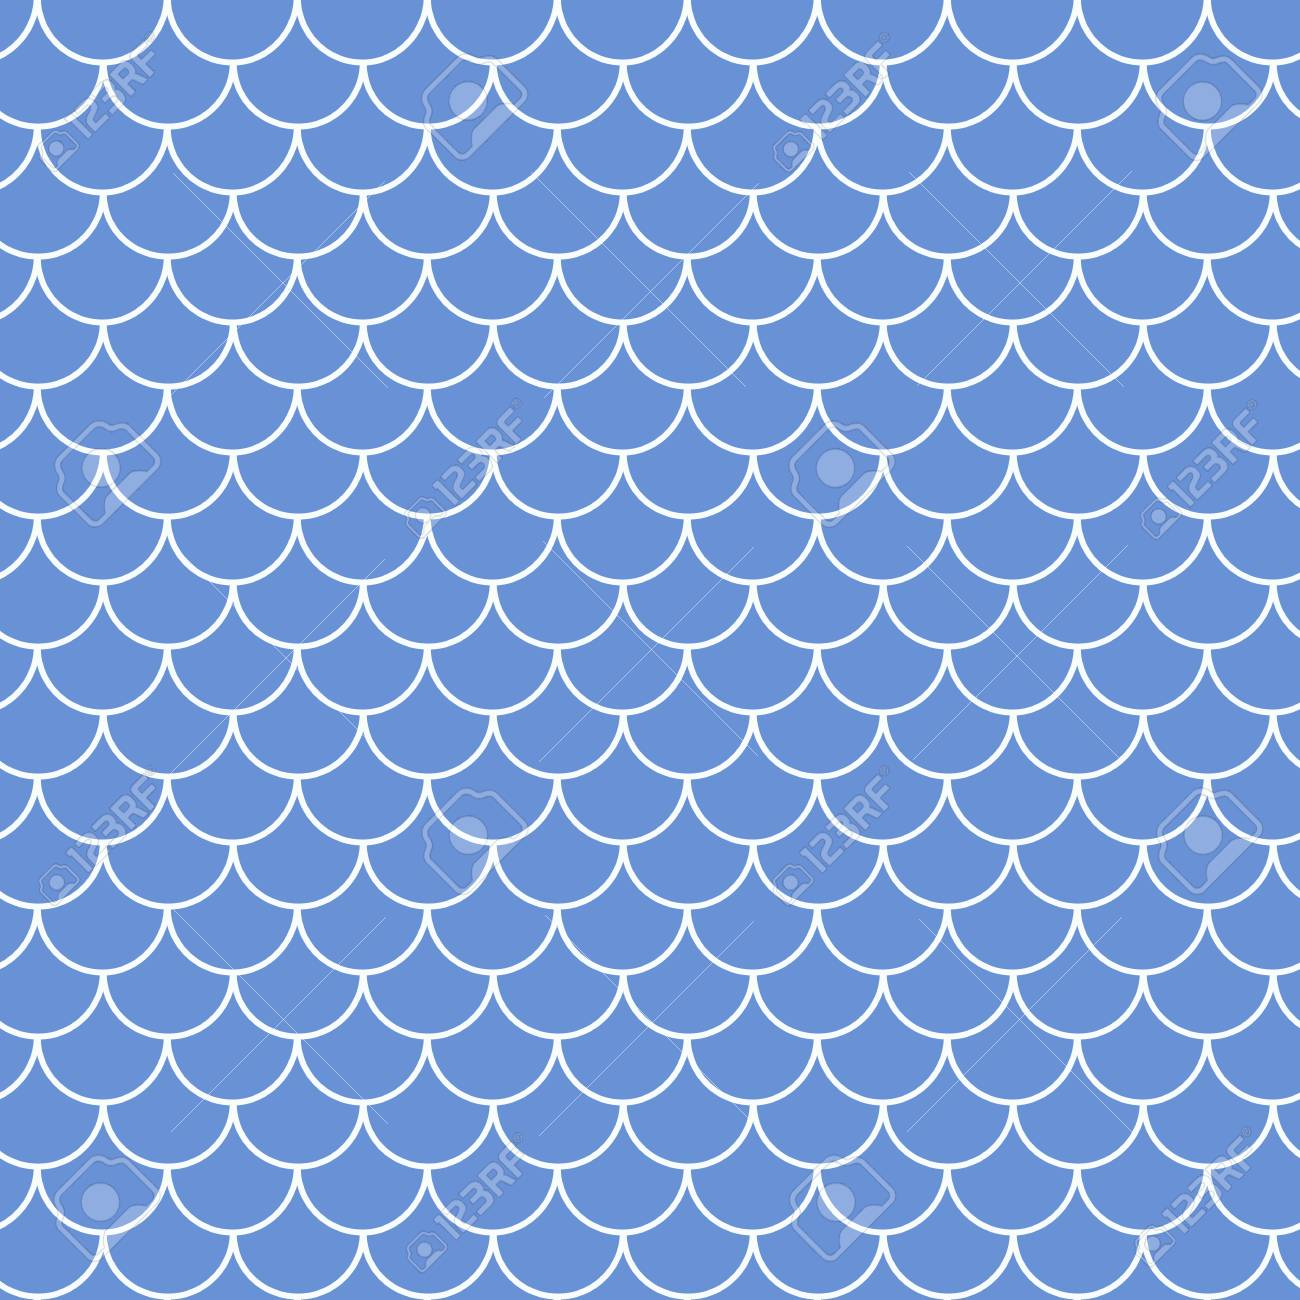 Fish Scale Seamless Pattern Reptile Dragon Skin Texture Tillable